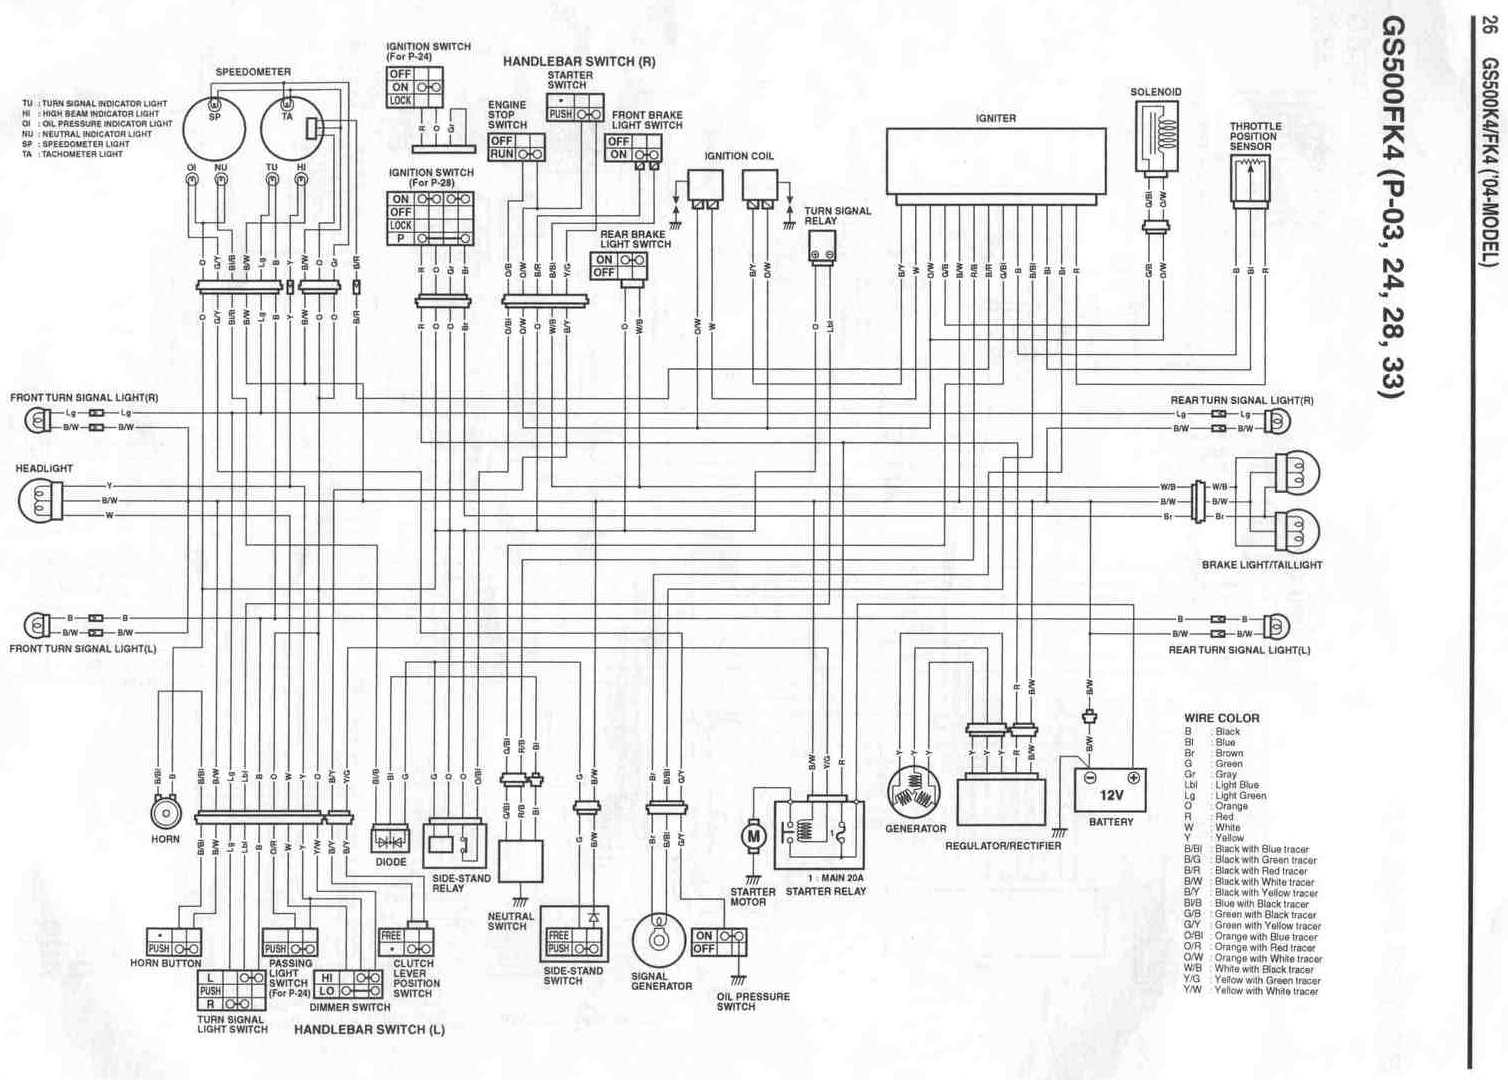 hight resolution of gs500 wiring diagram new wiring diagramsuzuki gs500 wiring diagram wiring diagram expert 2005 suzuki gs500 wiring